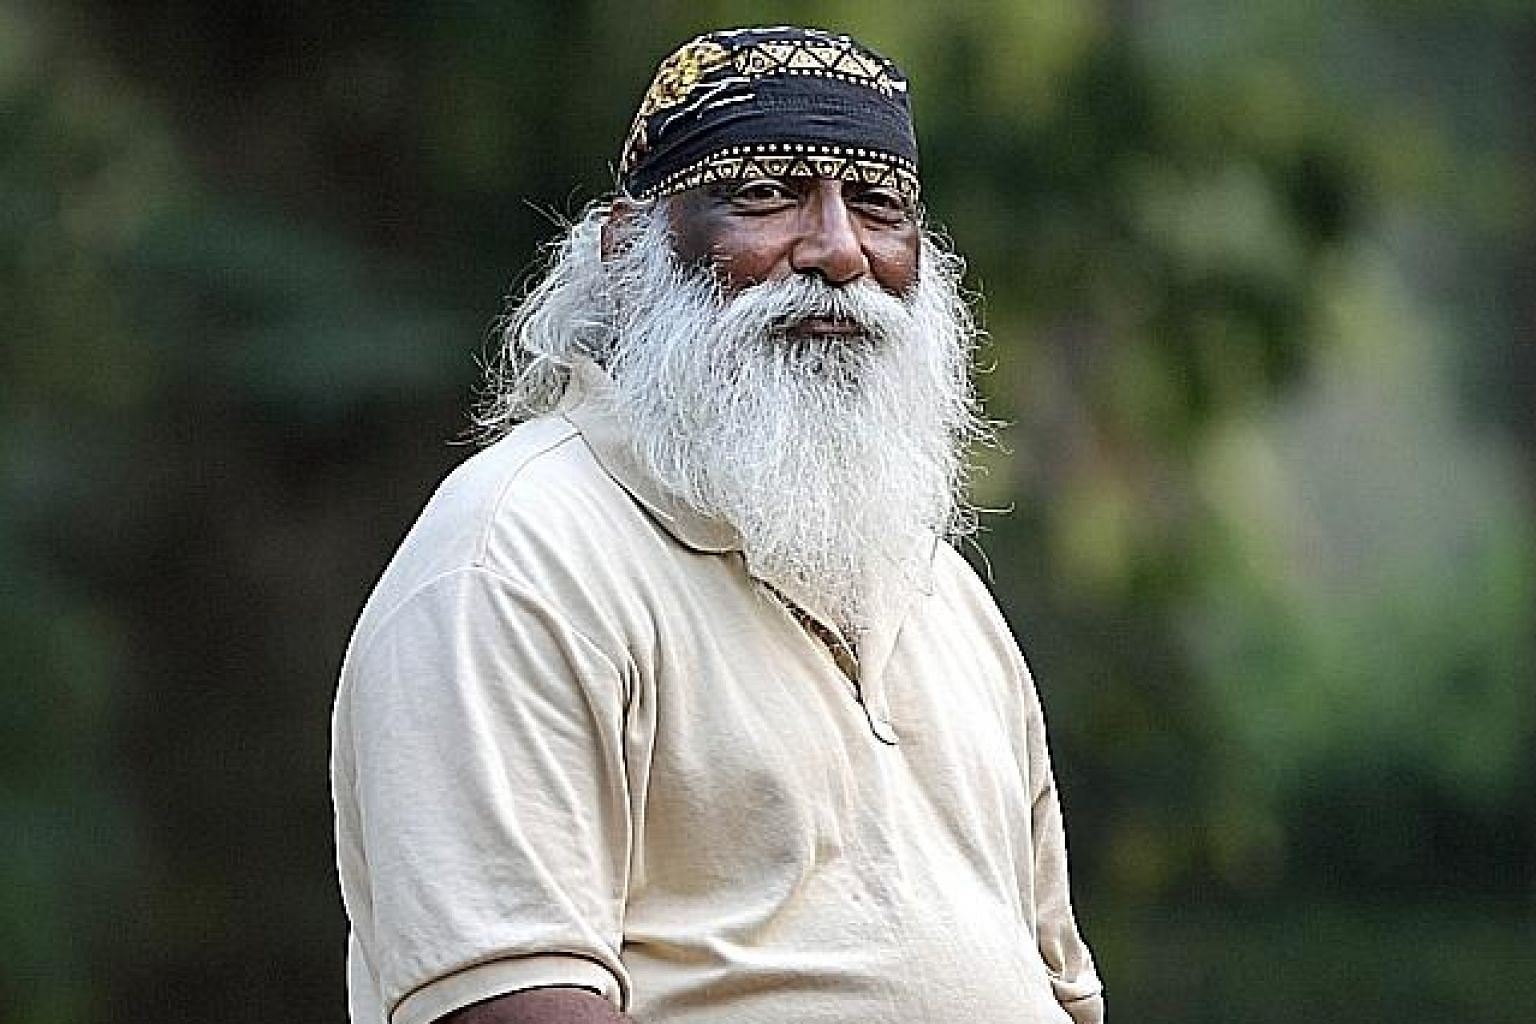 The death of conservationist Subaraj Rajathurai sparked an outpouring of grief from the public and the nature community yesterday. ST PHOTO: ALPHONSUS CHERN